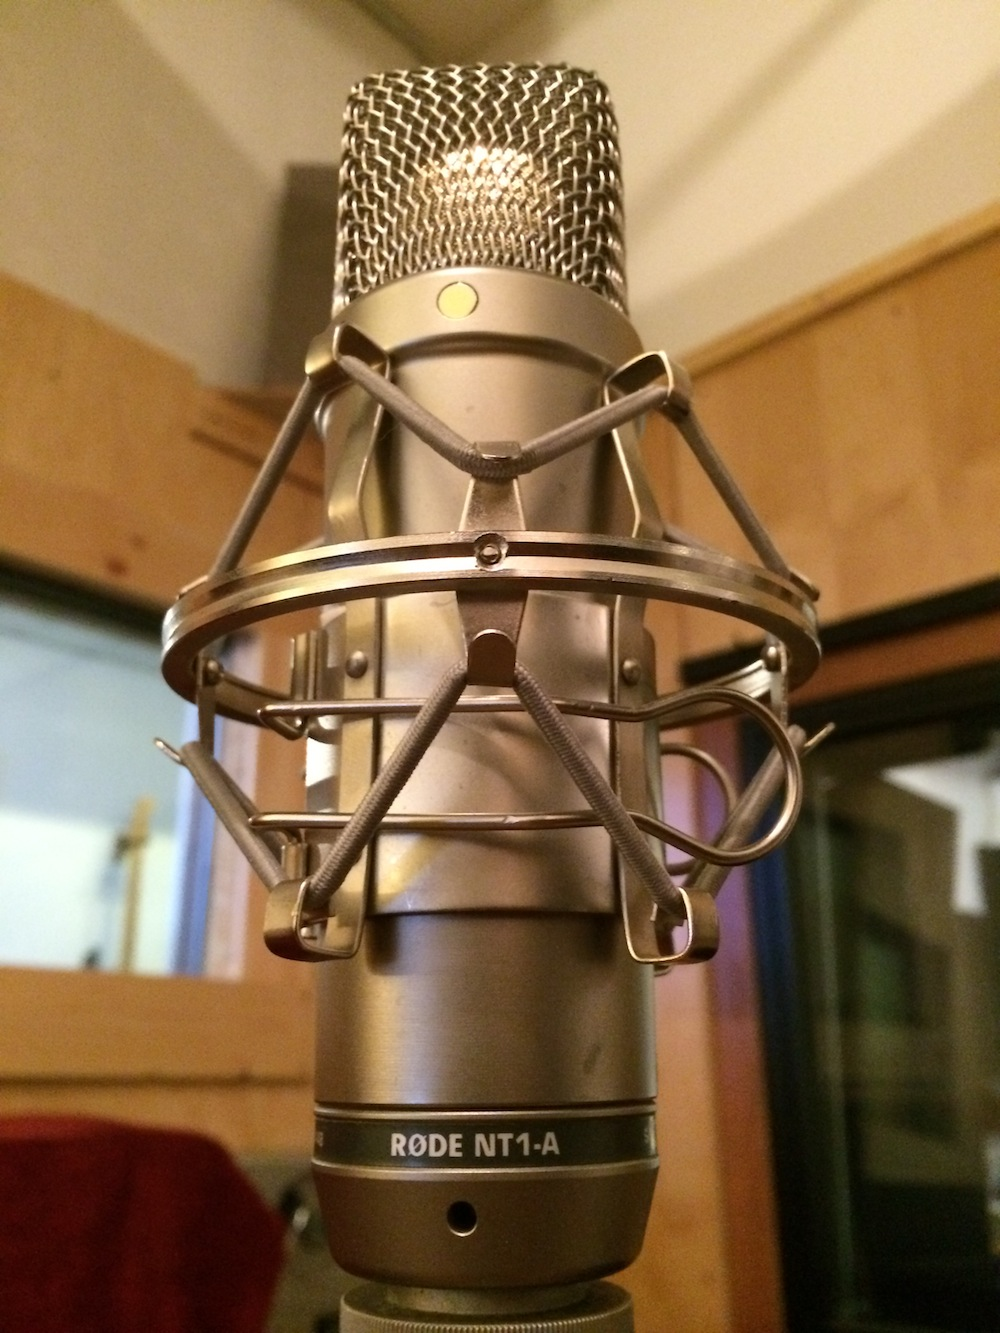 NYC Recording Studio Gear Rode NT1-A